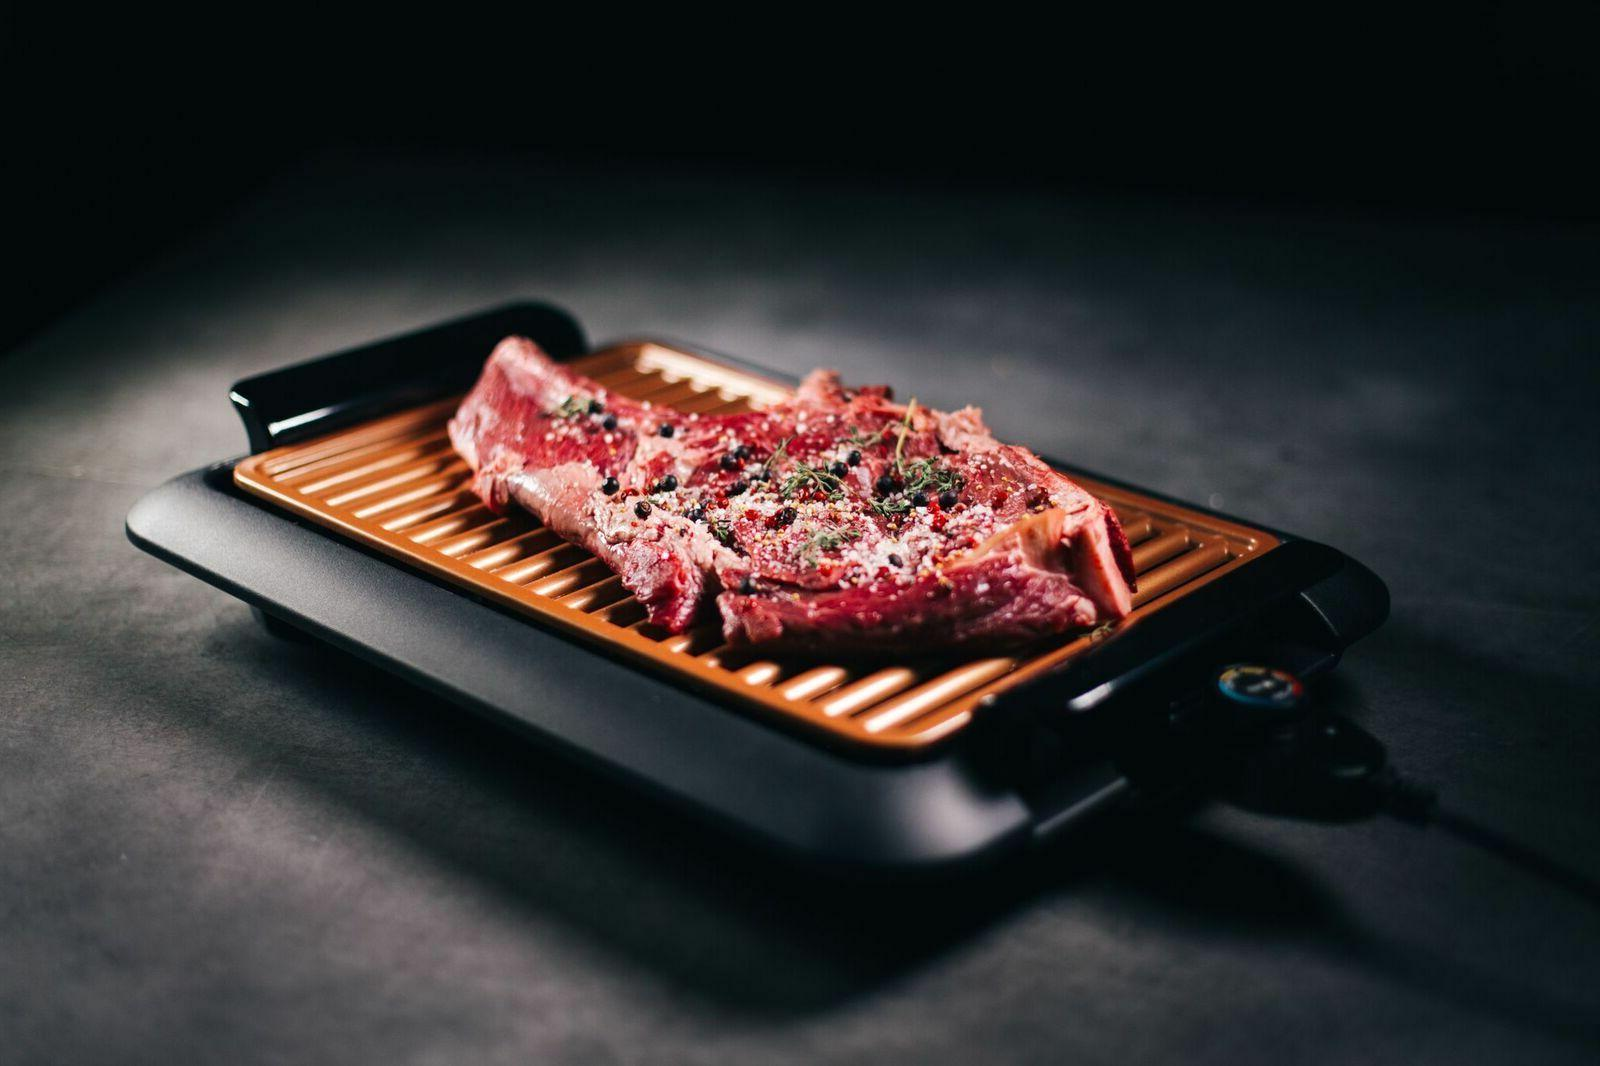 Gotham Smokeless Indoor Grill Portable -As TV